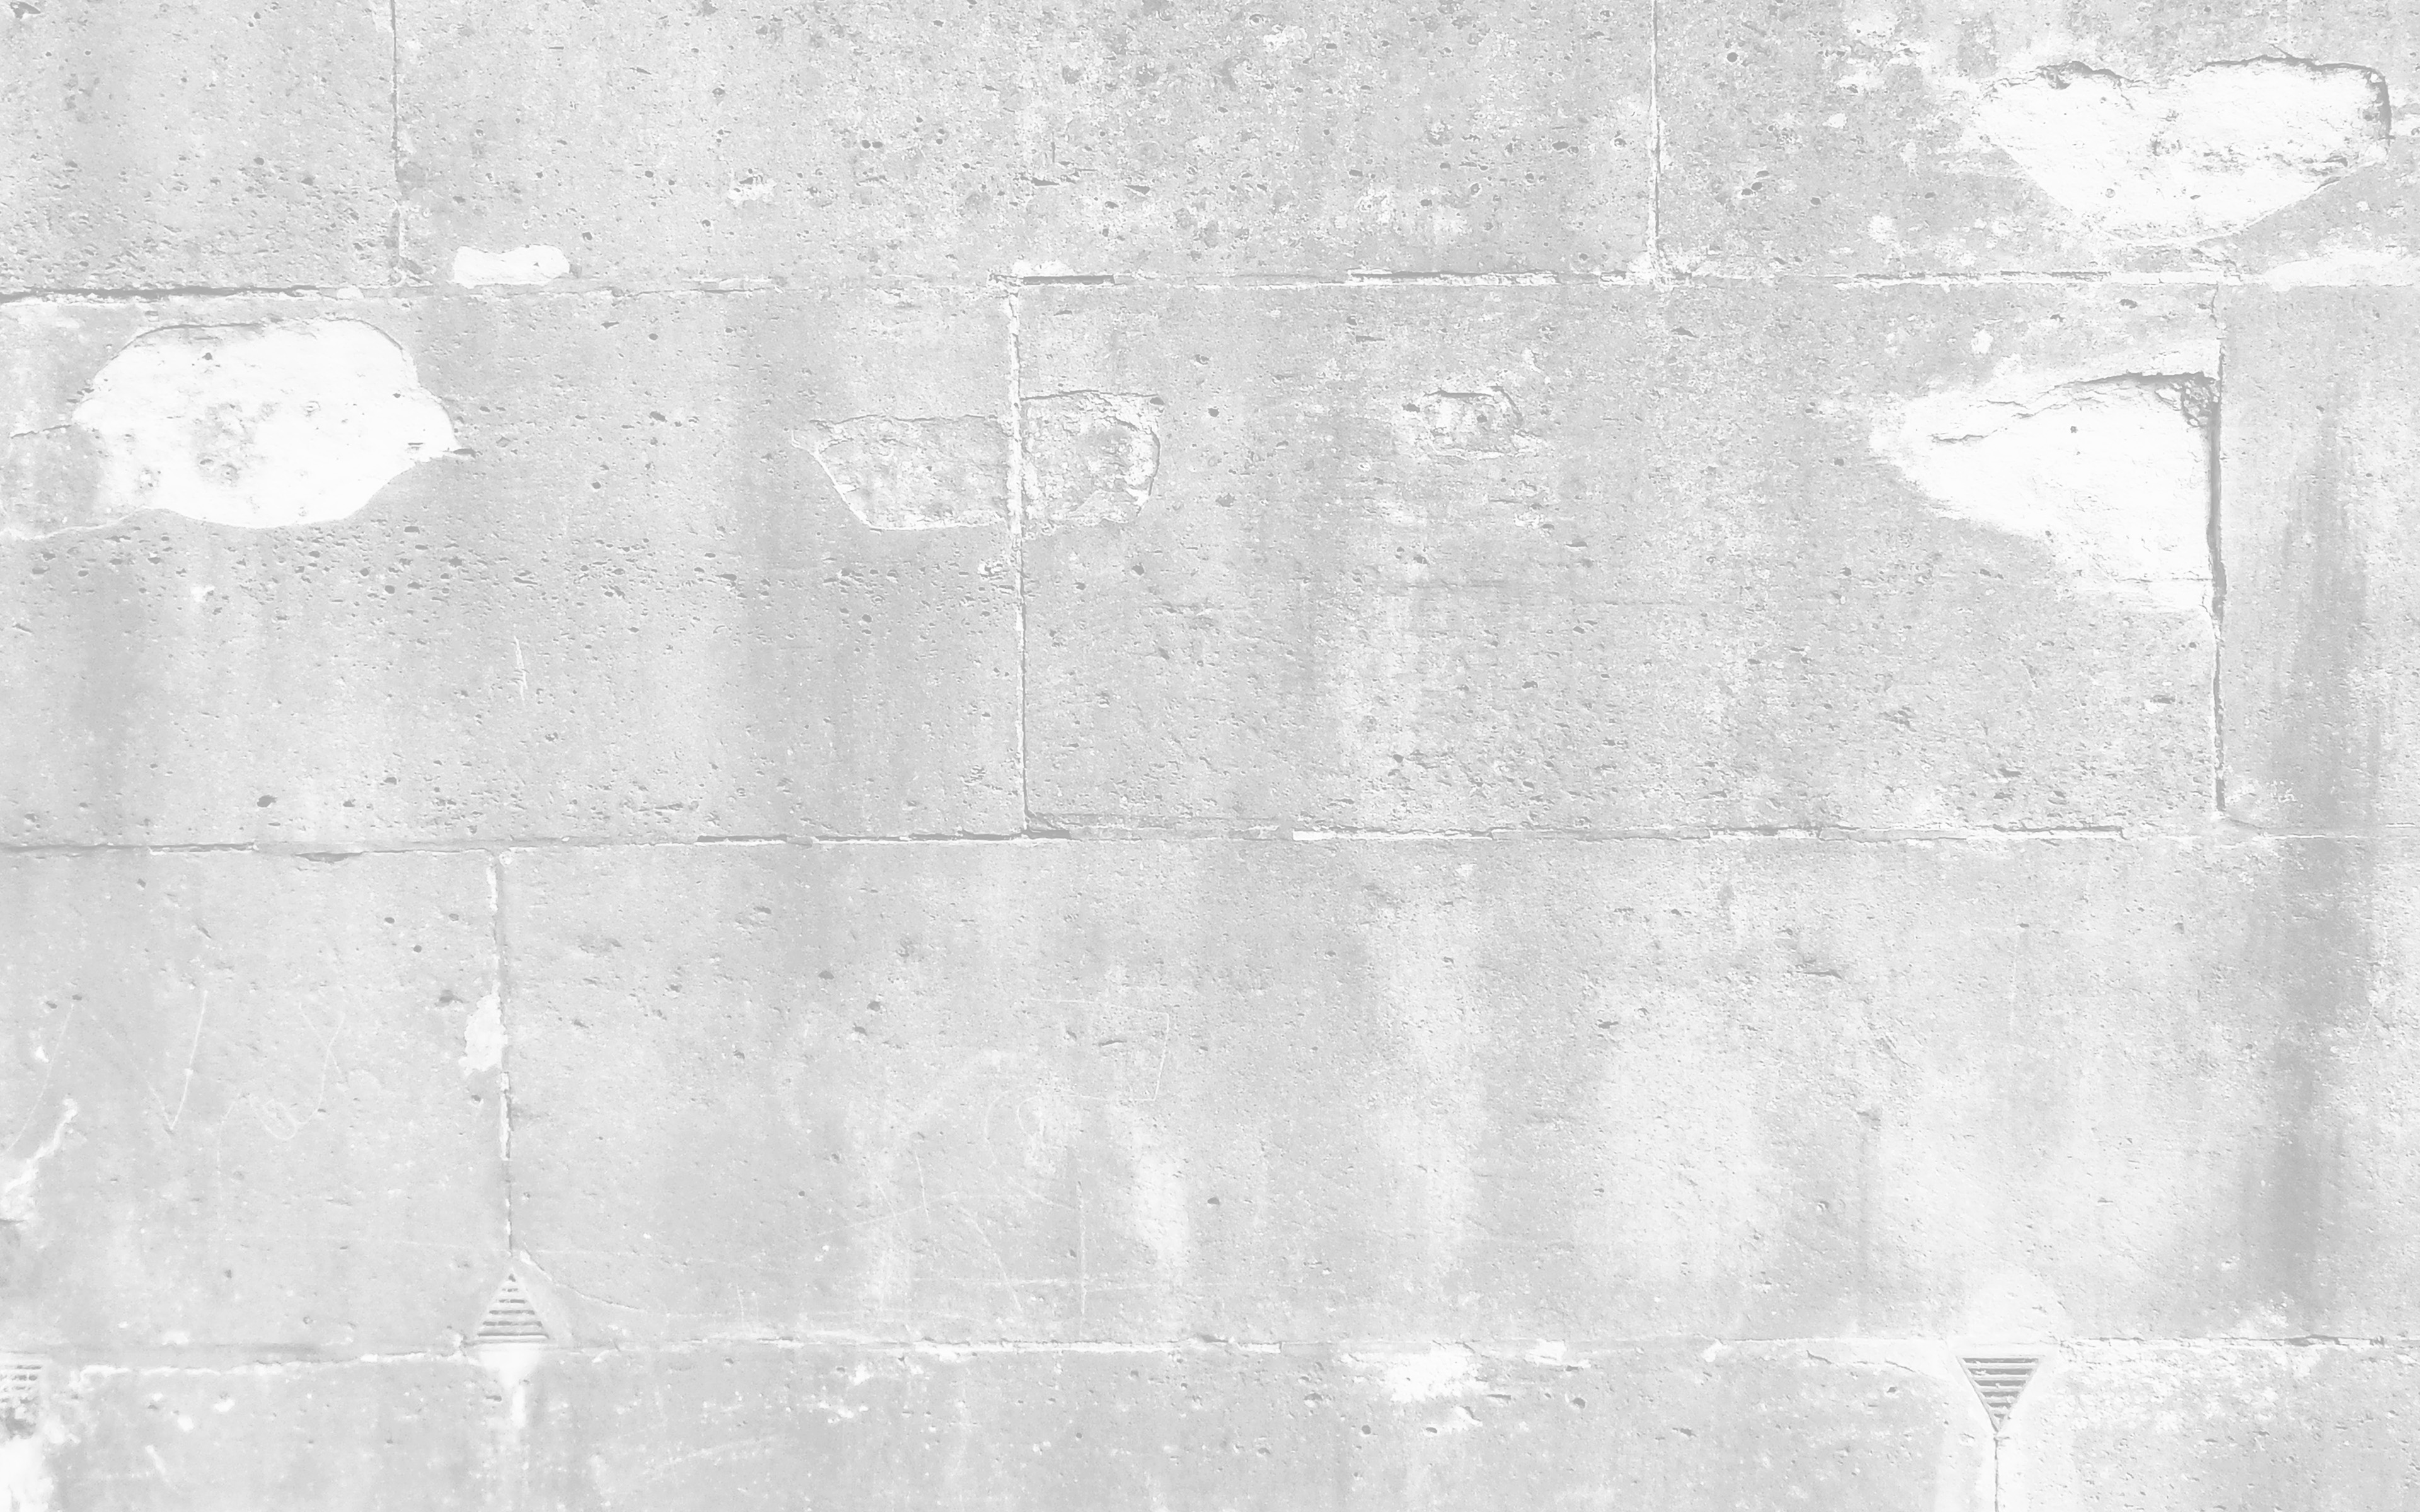 vj46-wall-brick-texture-tough-white-pattern-bw - Papers.co